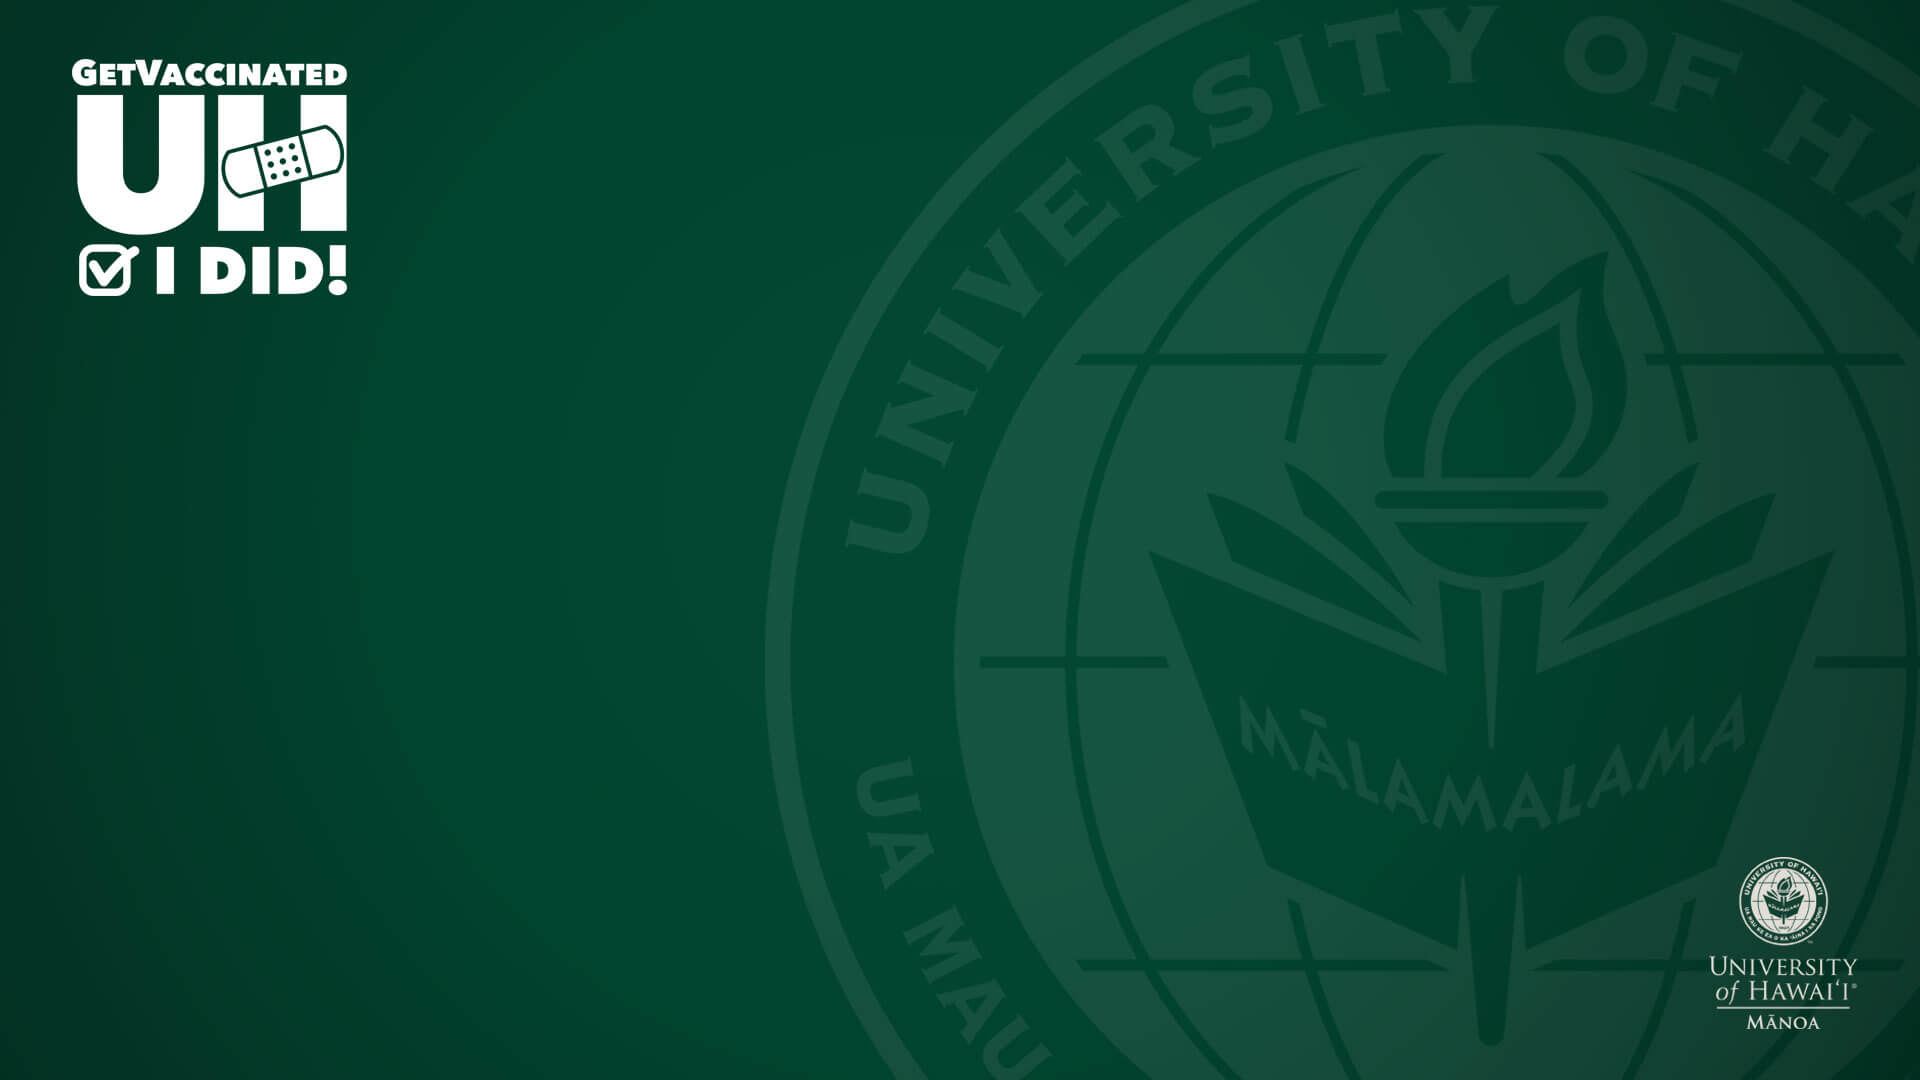 Get vaccinated, I did-Manoa Zoom background with seal and nameplate